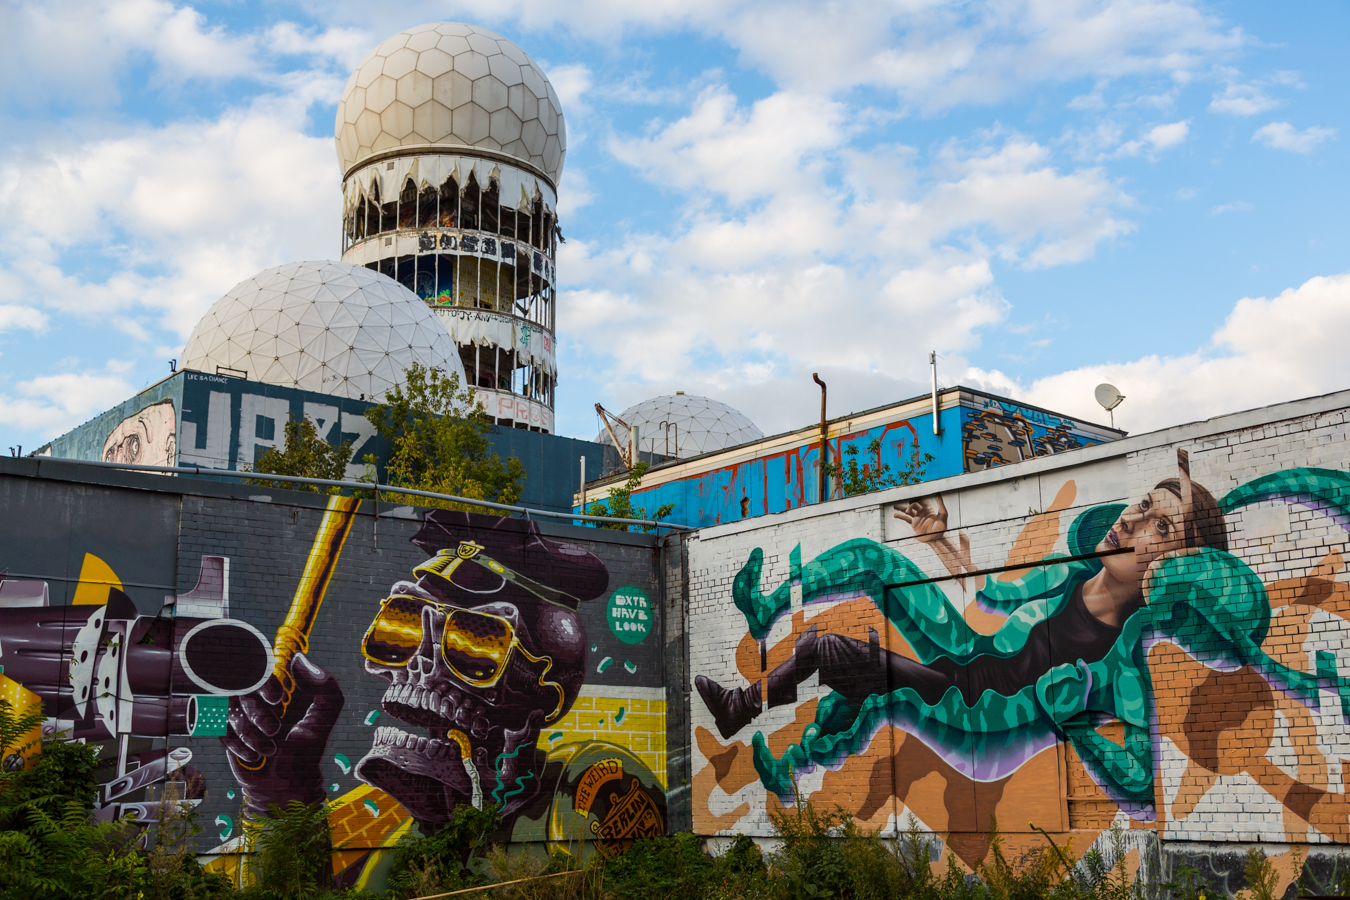 Teufelsberg artworks: Heavenly creations on Devil's Mountain | Abandoned Berlin